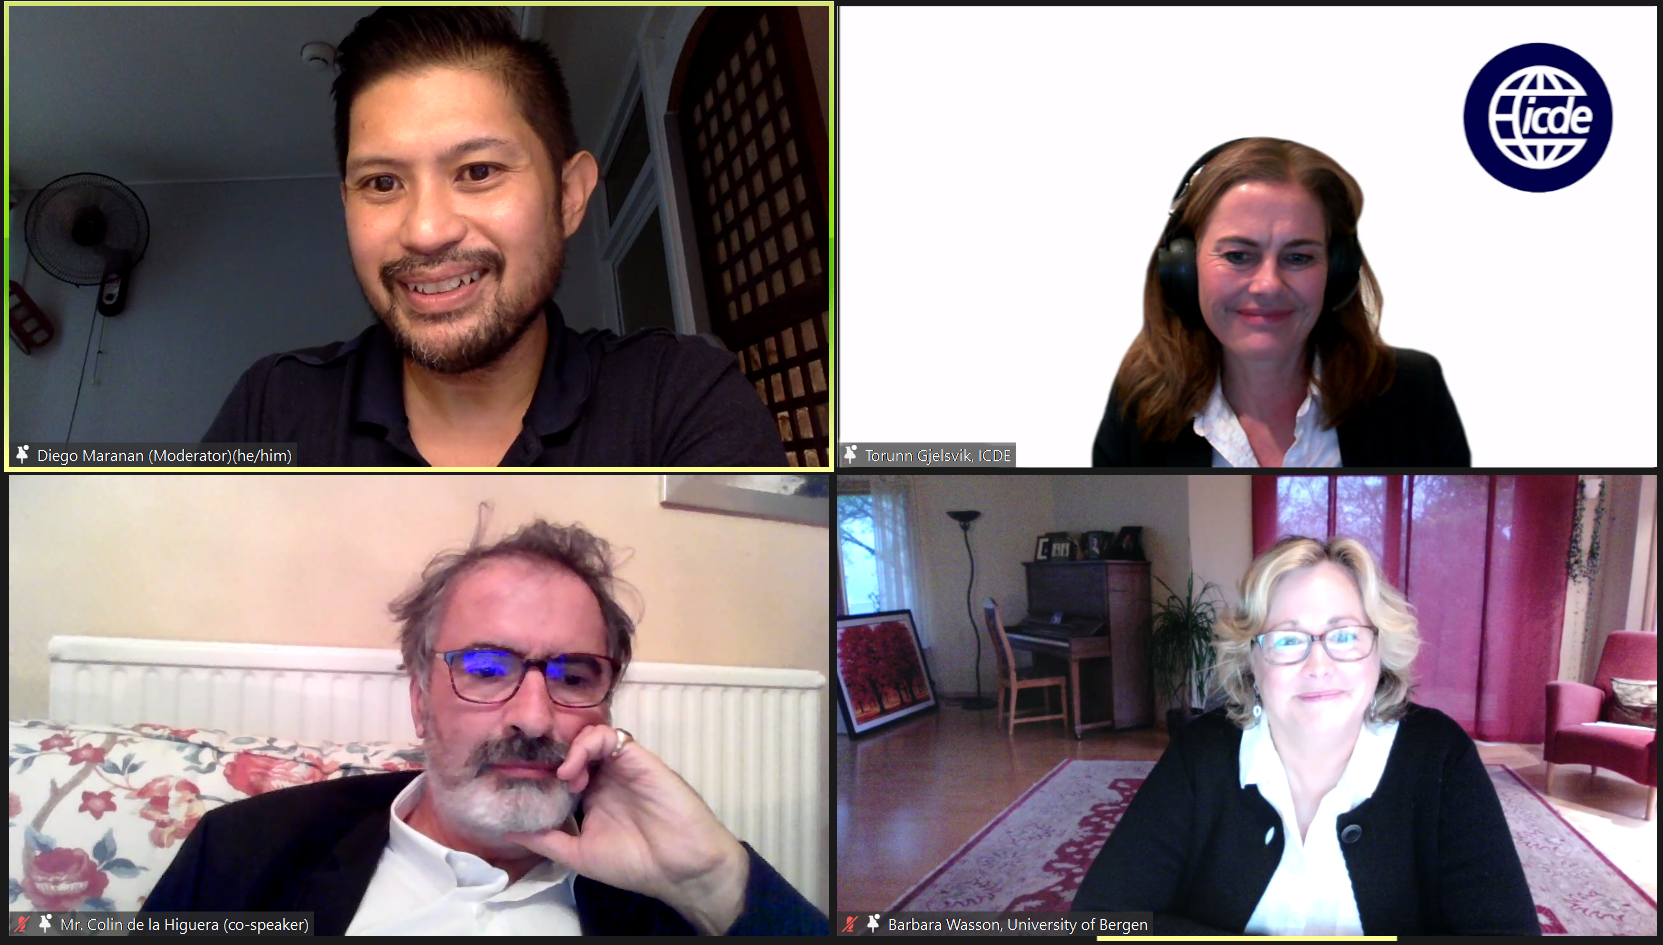 Prof. Dr. Diego Maranan moderates the Q&A forum on Artificial Intelligence - Challenges and Future Directions in Open, Distance, and Online Learning (Clockwise from Top-Left: Prof. Dr. Diego Maranan, Ms. Torunn Gjelsvik, Mr. Colin de la Higuera, and Ms. Barbara Wasson)